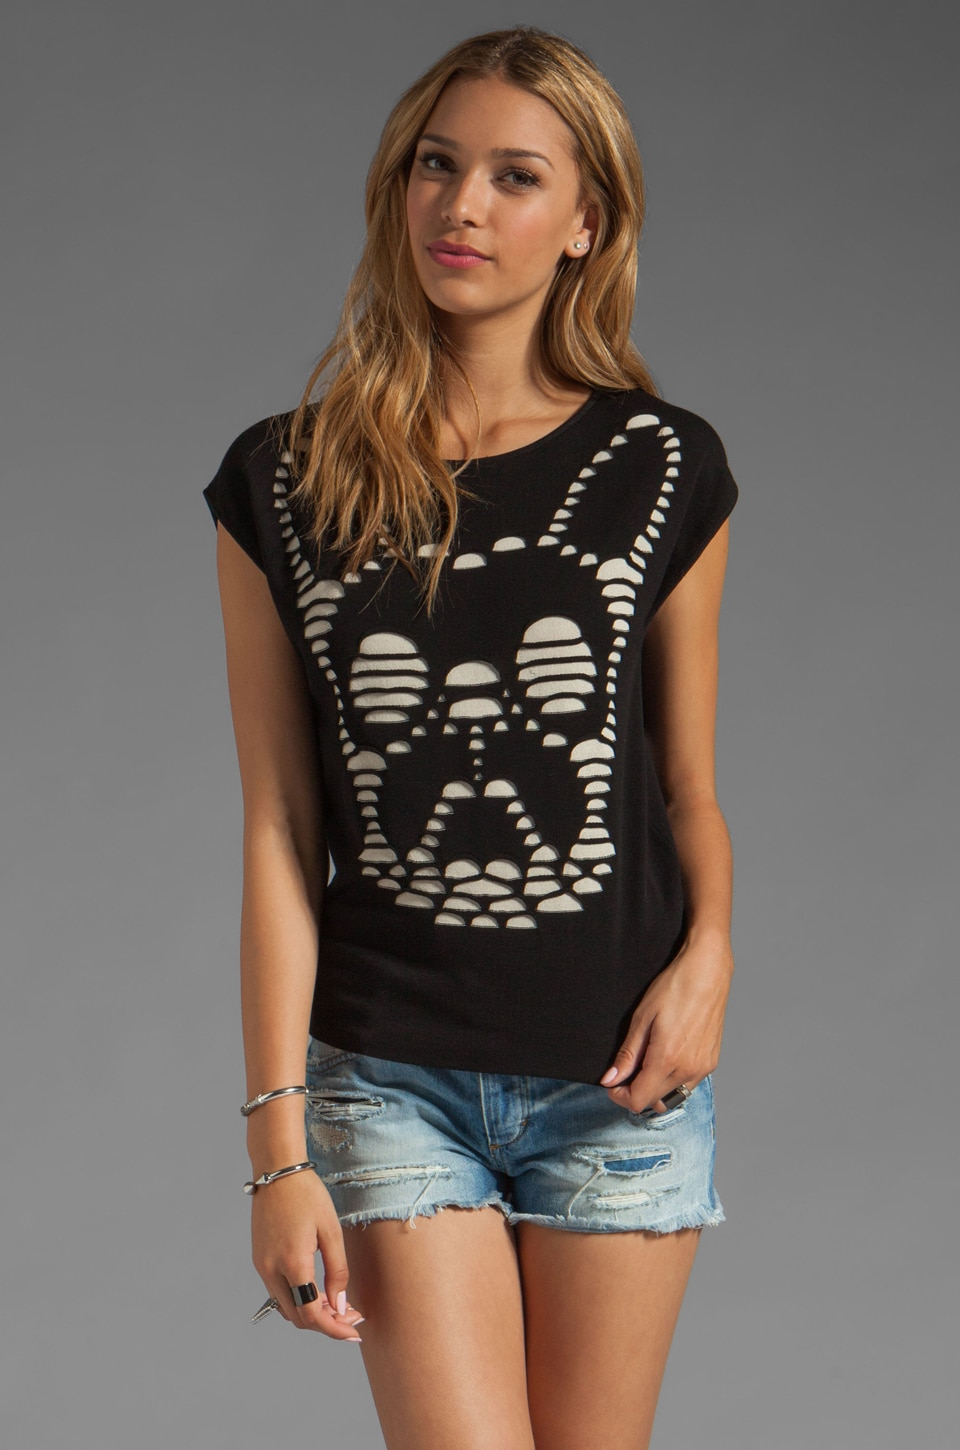 RVN Cutout Illusion Frenchy Pullover in Black/Sand